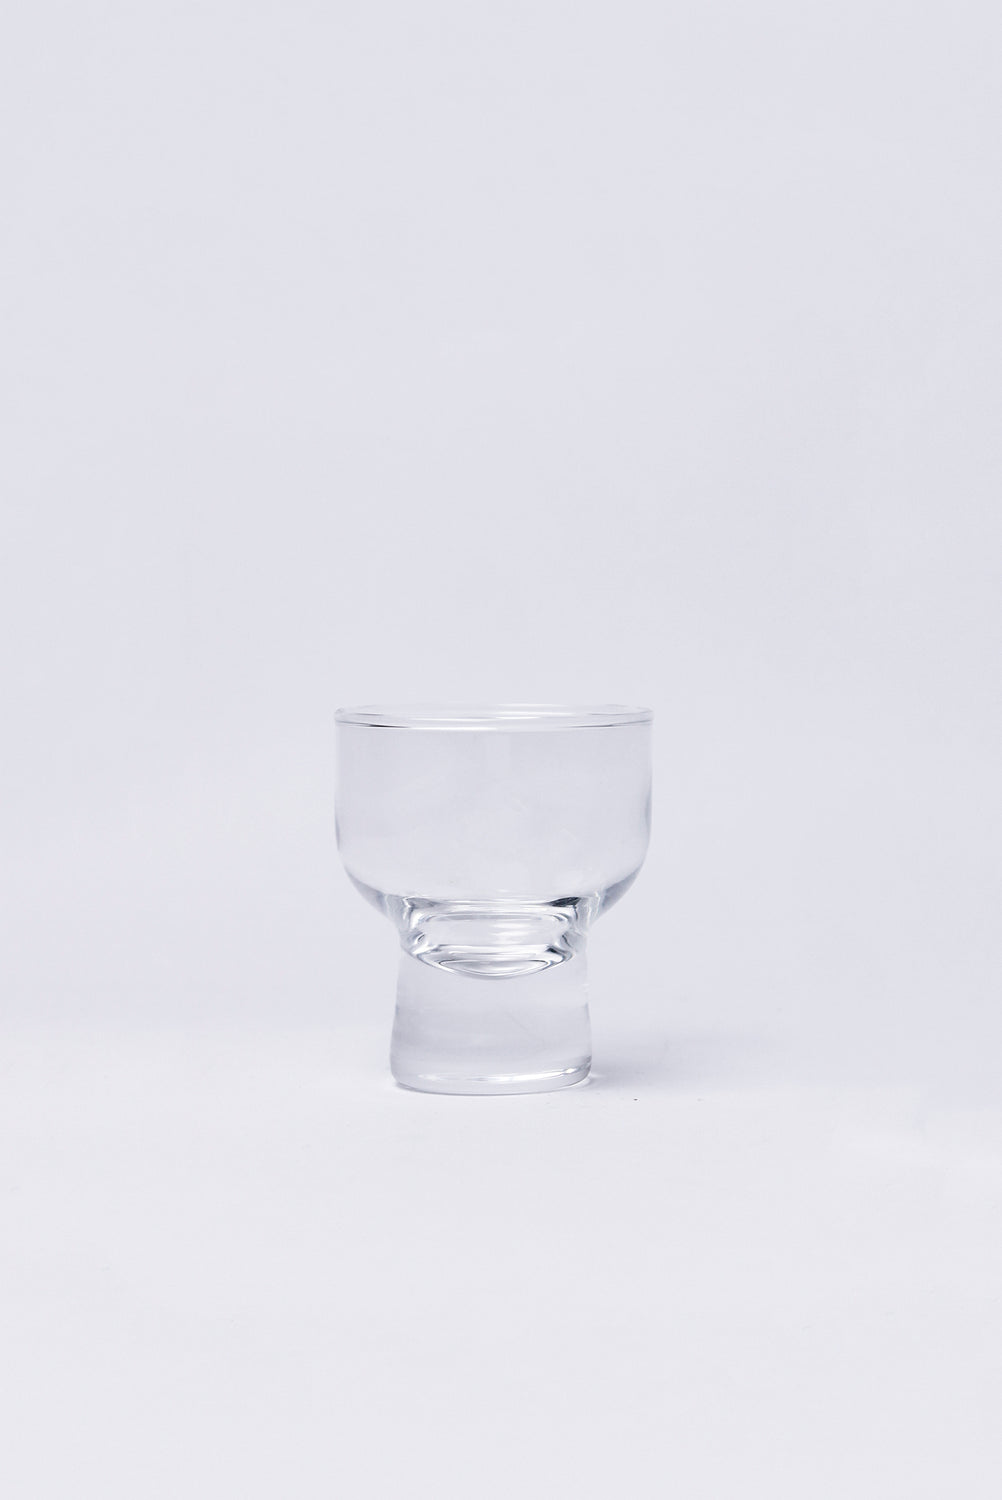 Glass Sake Cup 2.3 oz.